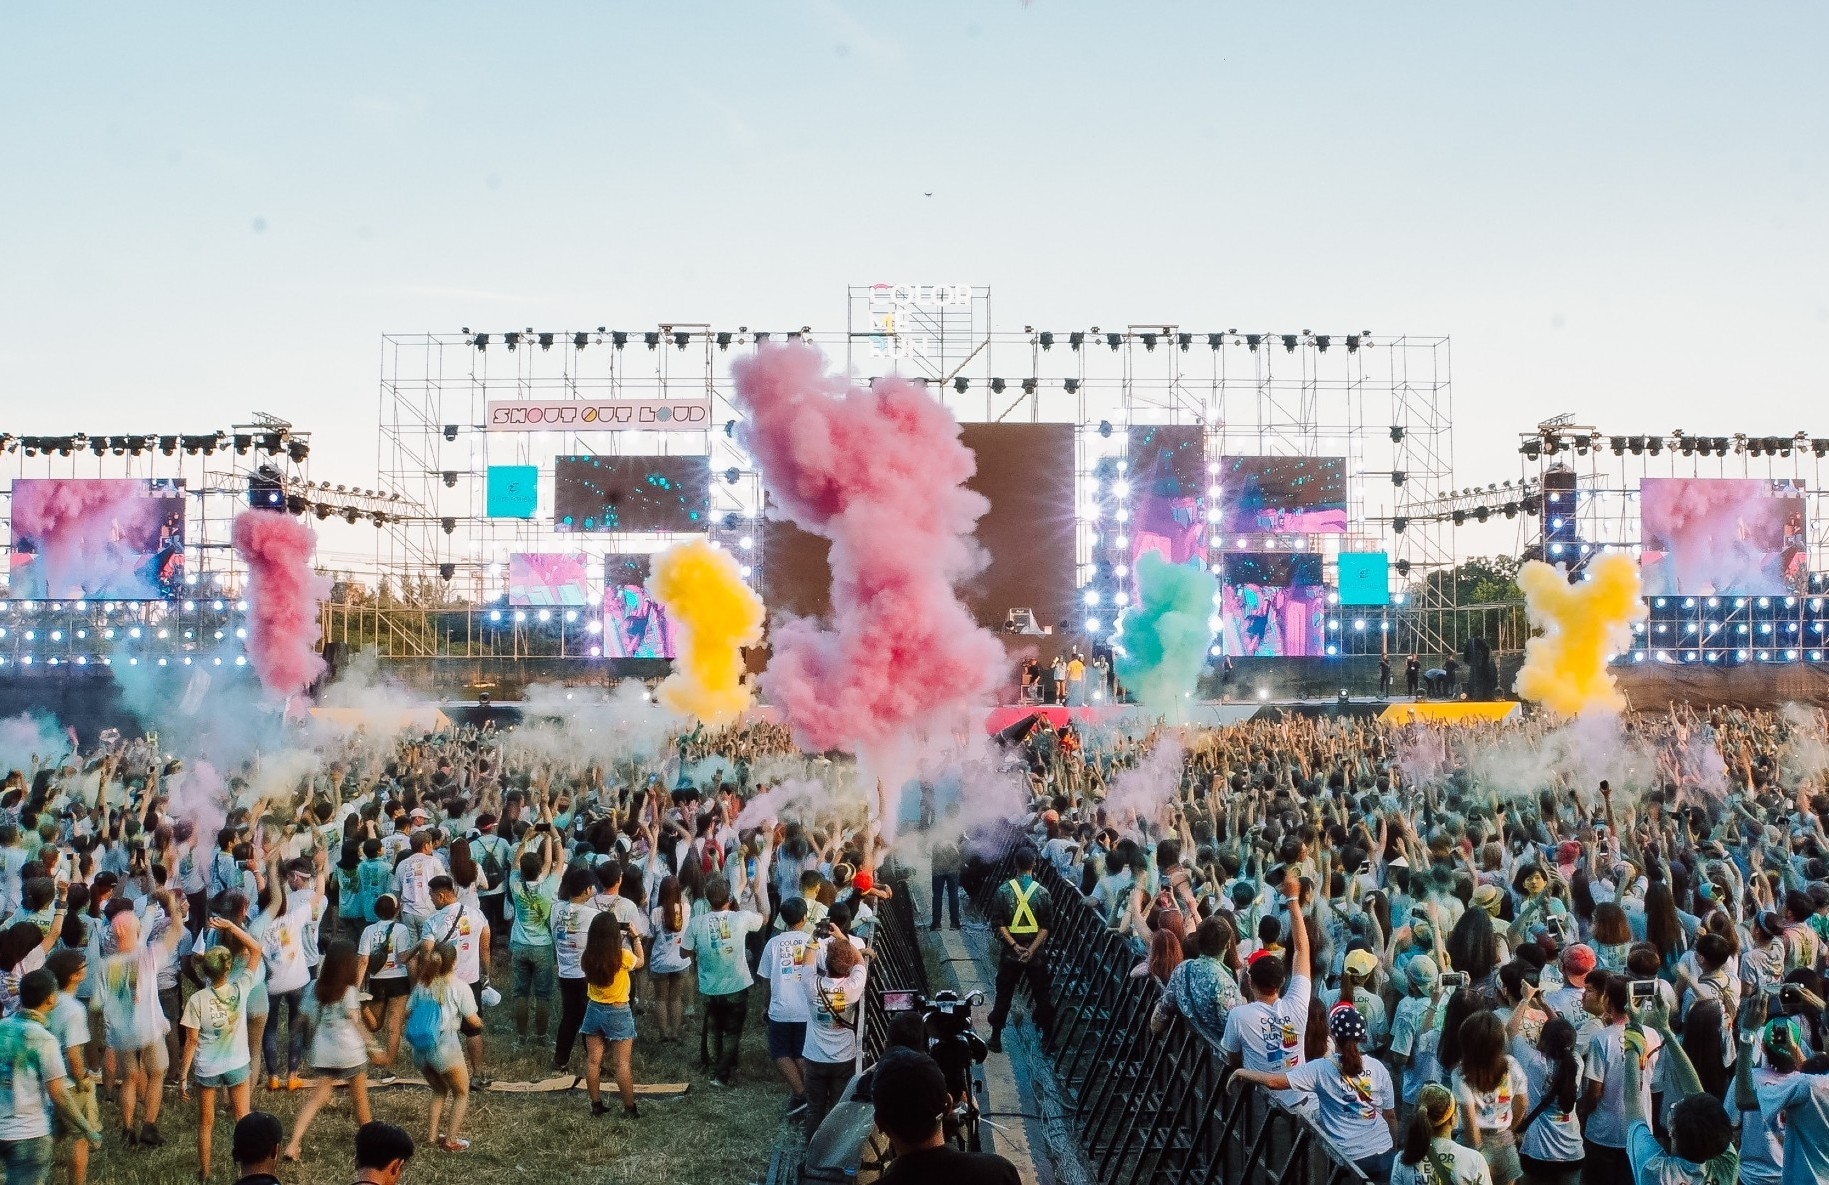 Festival-goers feel confident about summer events